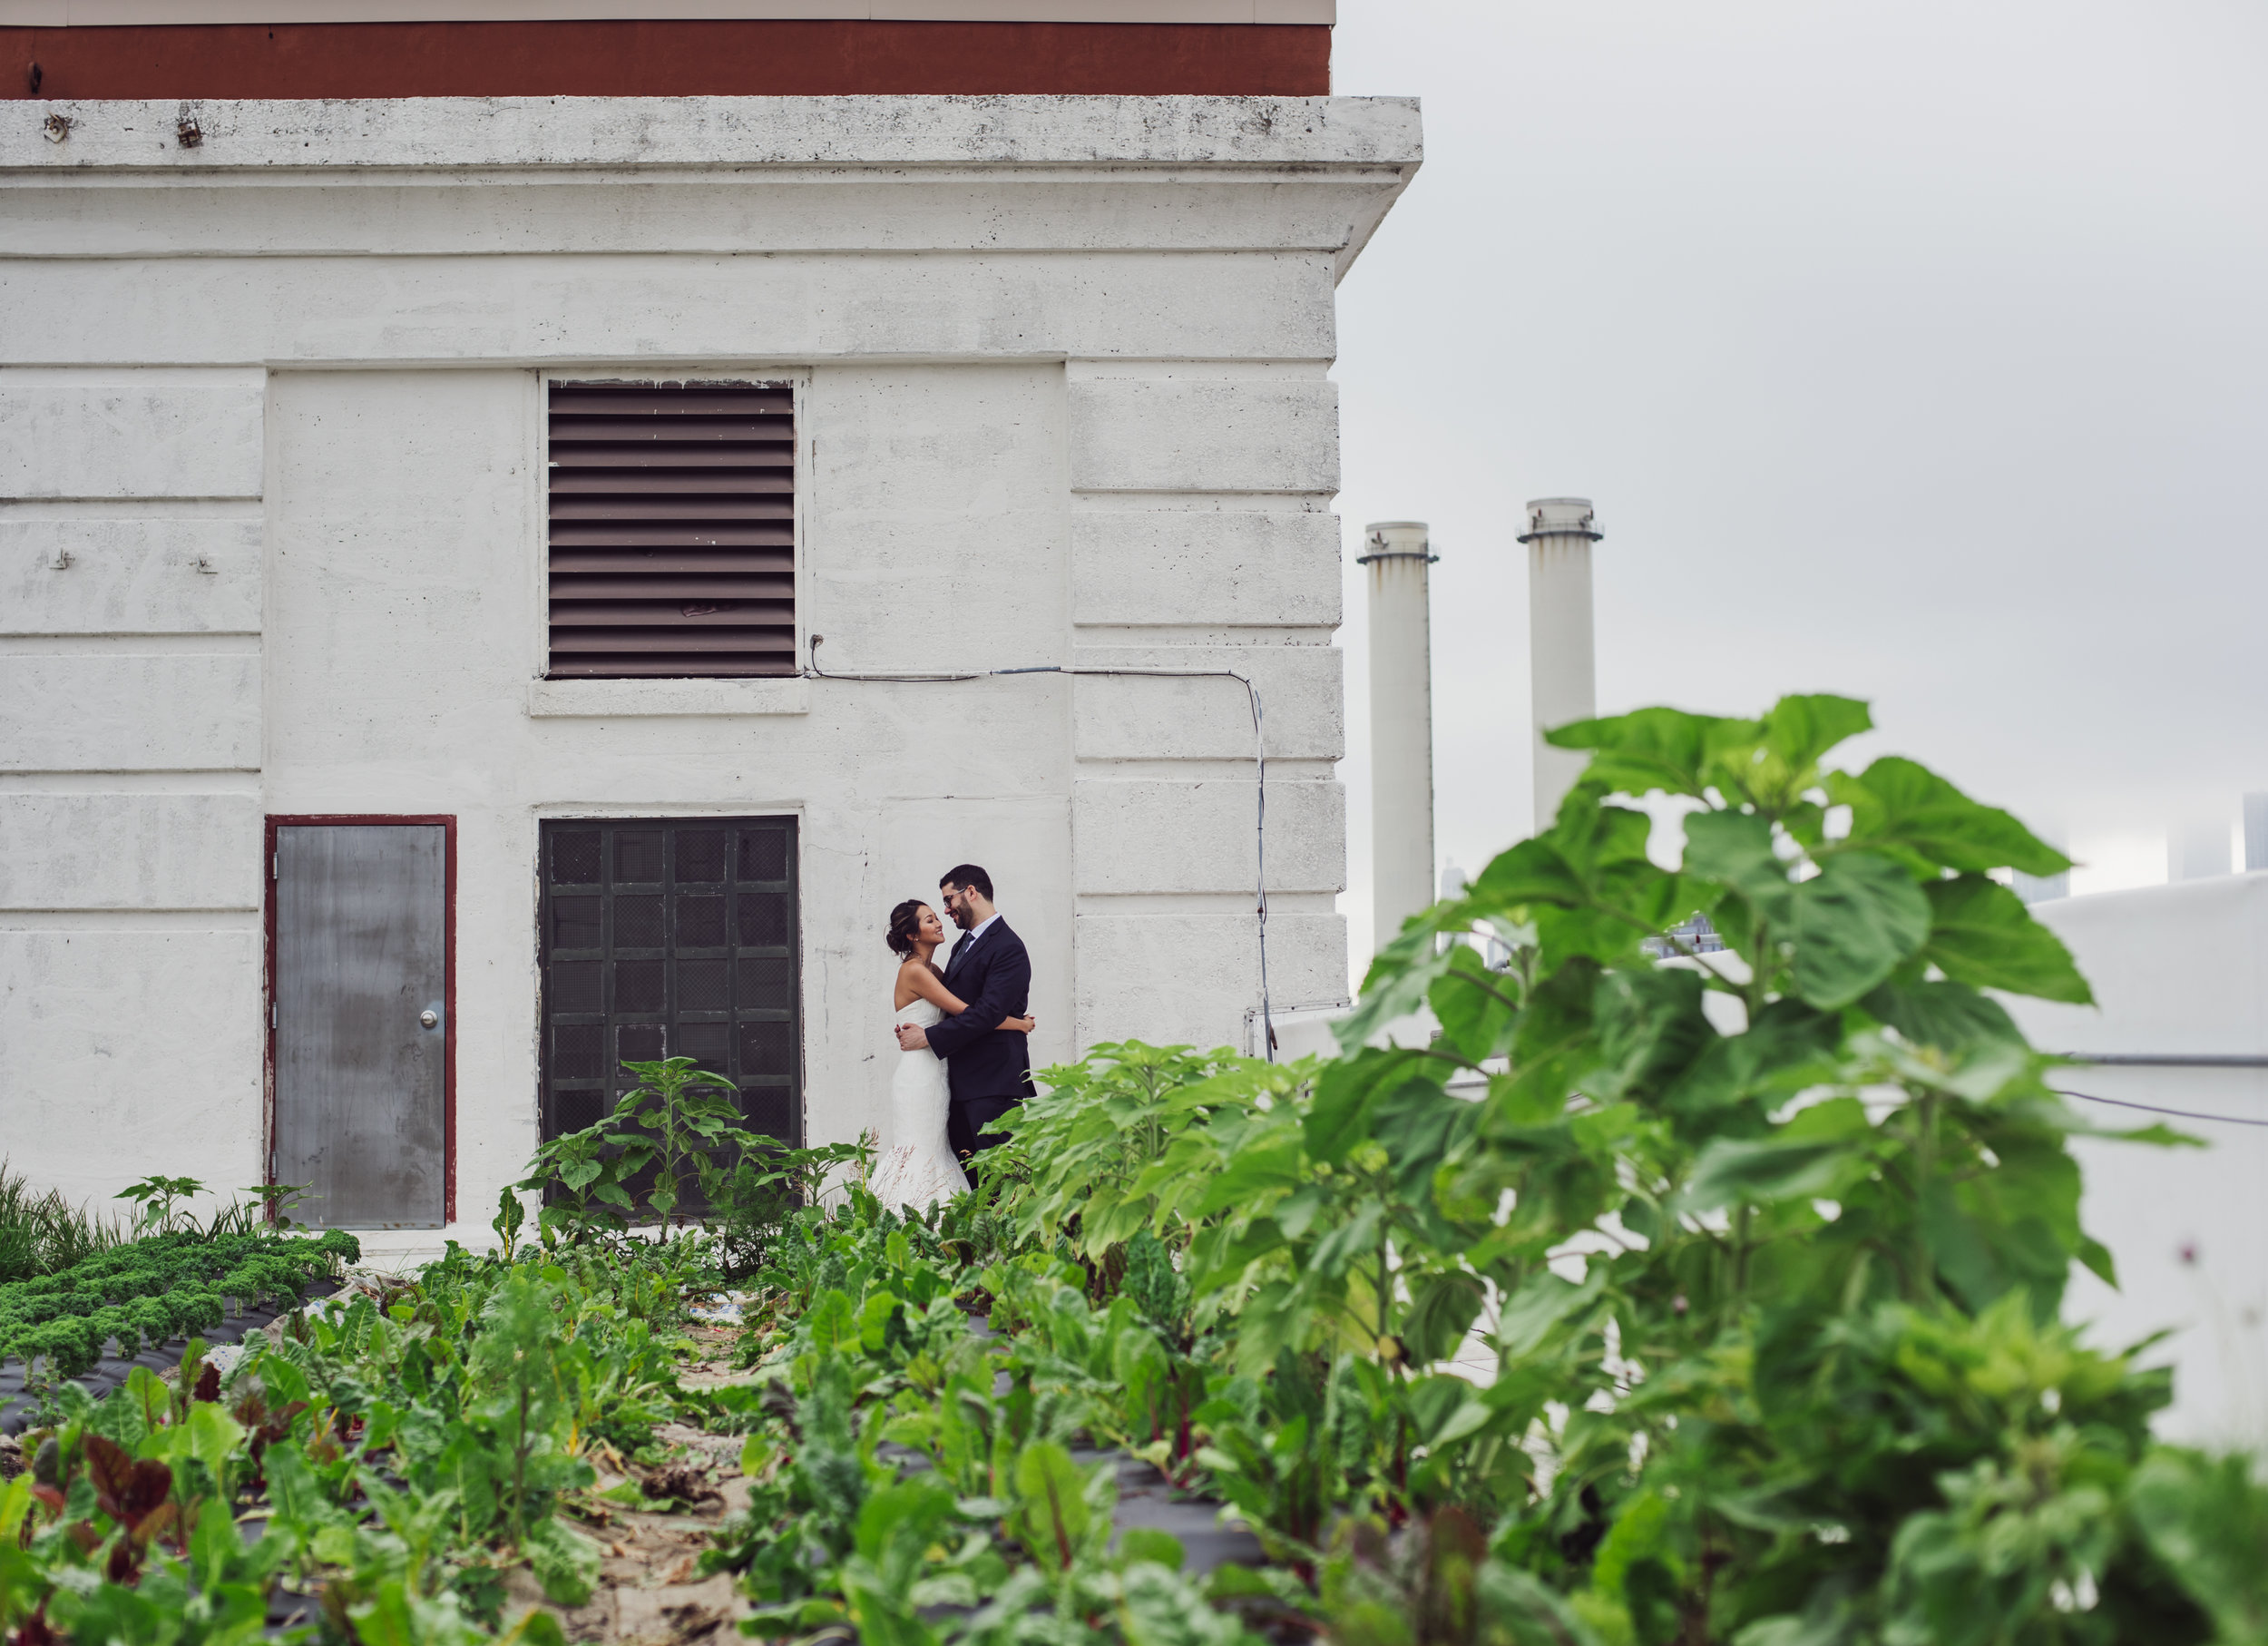 BROOKLYN GRANGE WEDDING - LILY & ANDREW - NYC BEST INTIMATE WEDDING PHOTOGRAPHER - CHI-CHI ARI-126.jpg